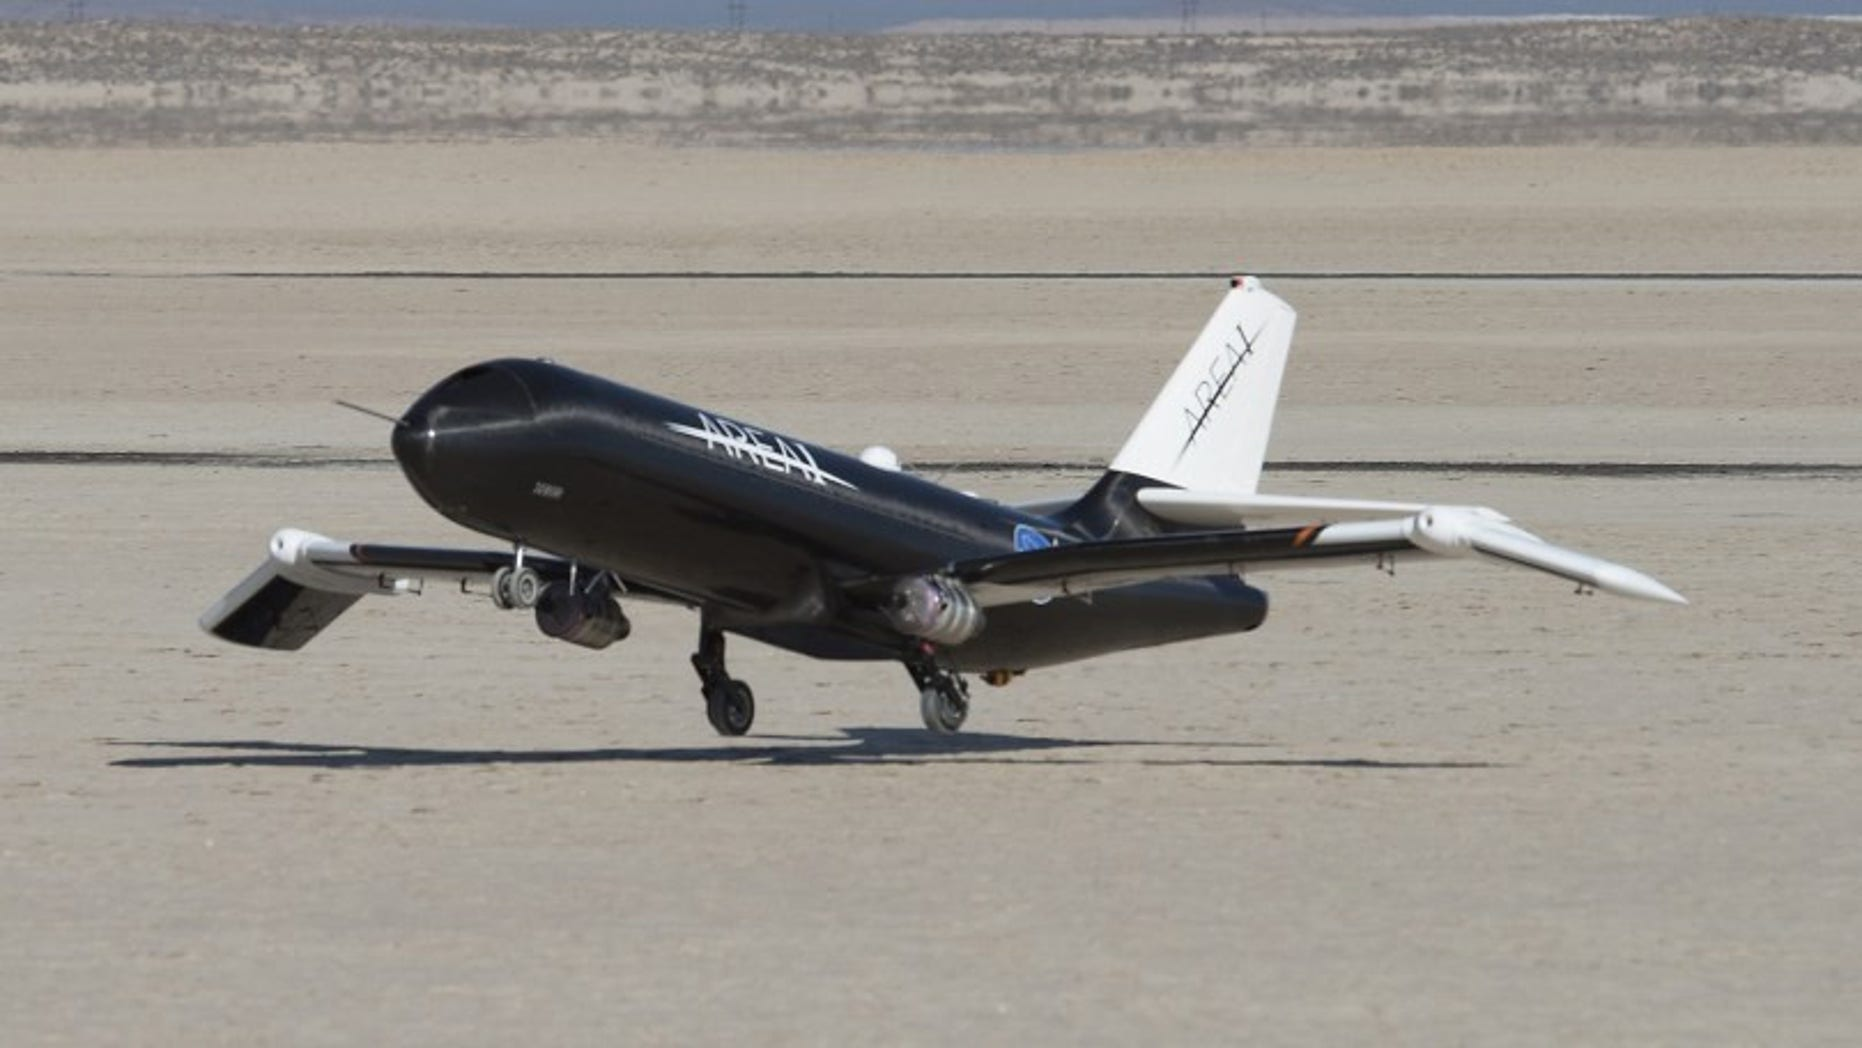 NASA used a remotely-controlled flight testbed called Prototype Technology-Evaluation Research Aircraft, or PTERA, to test the shape memory alloy. PTERA was designed and built by Area-I, and can be reconfigured to accommodate a wide variety of flight experiments. Credits: NASA / Ken Ulbrich